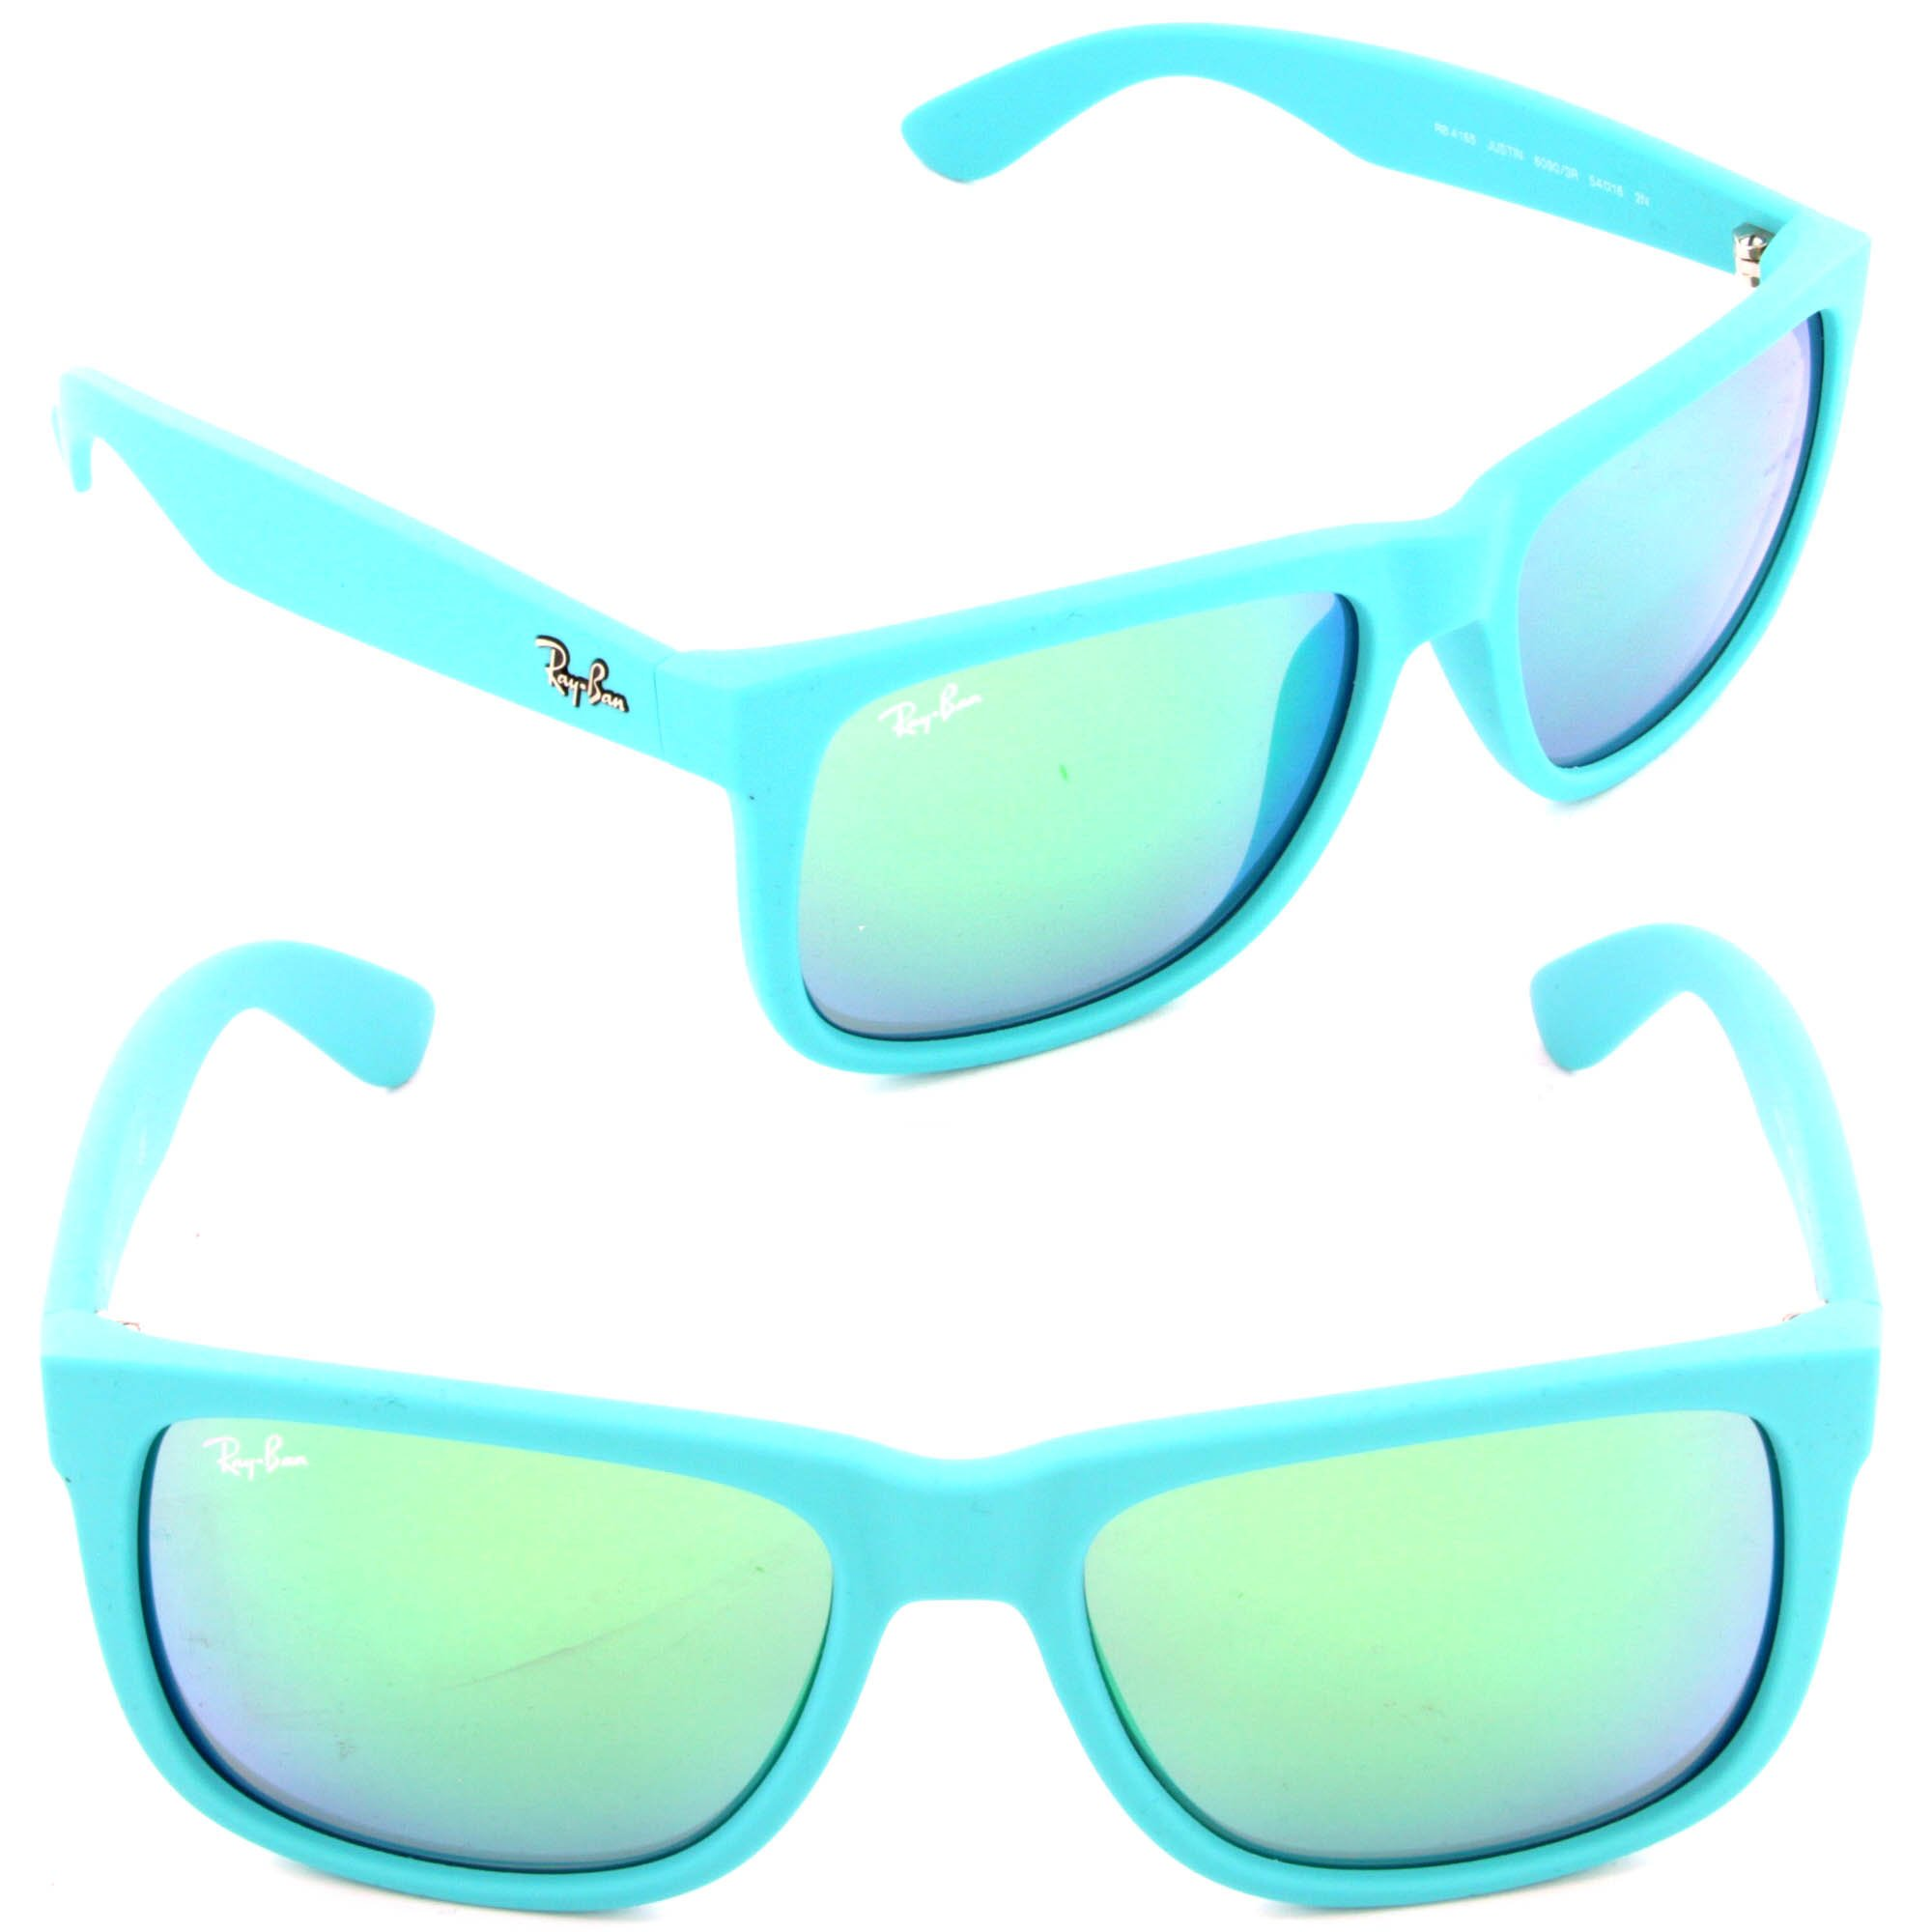 Ray-Ban -- RB4165F Justin(F) glasses only $115.00. Add lenses for $14.95